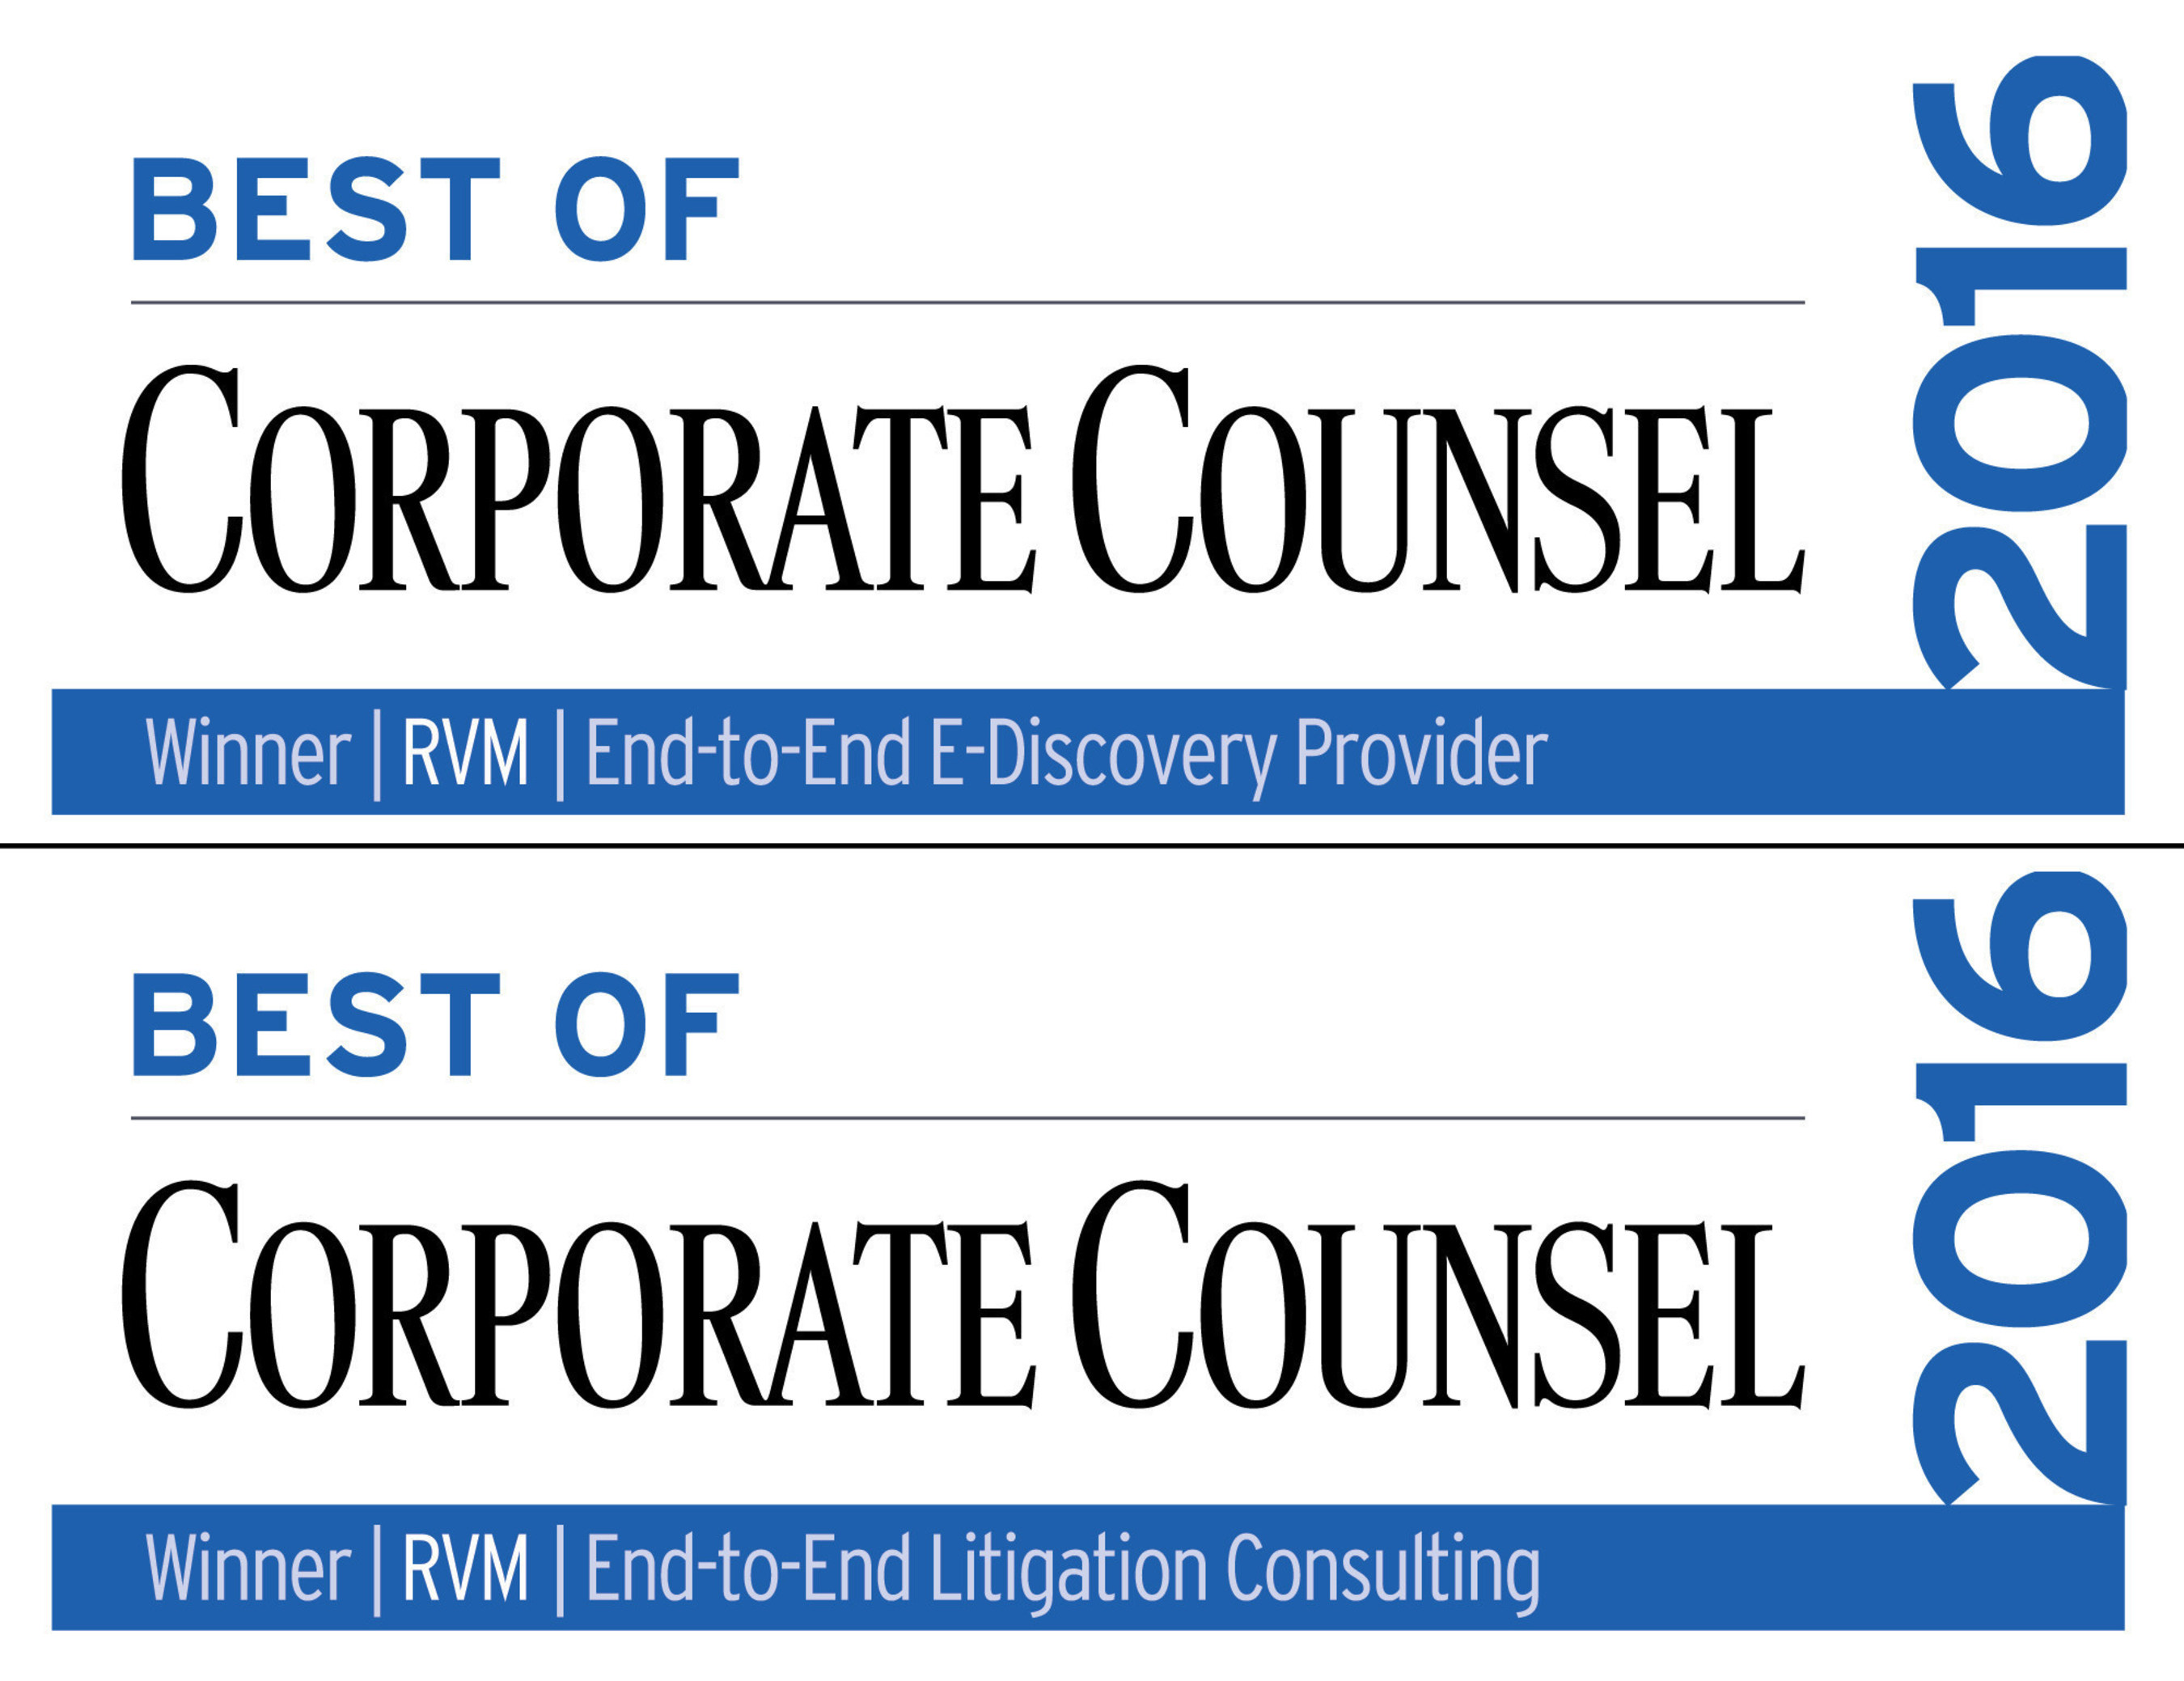 RVM named Best End-to-End eDiscovery Provider and Best End-to-End Litigation Consulting Provider by Corporate Counsel Magazine